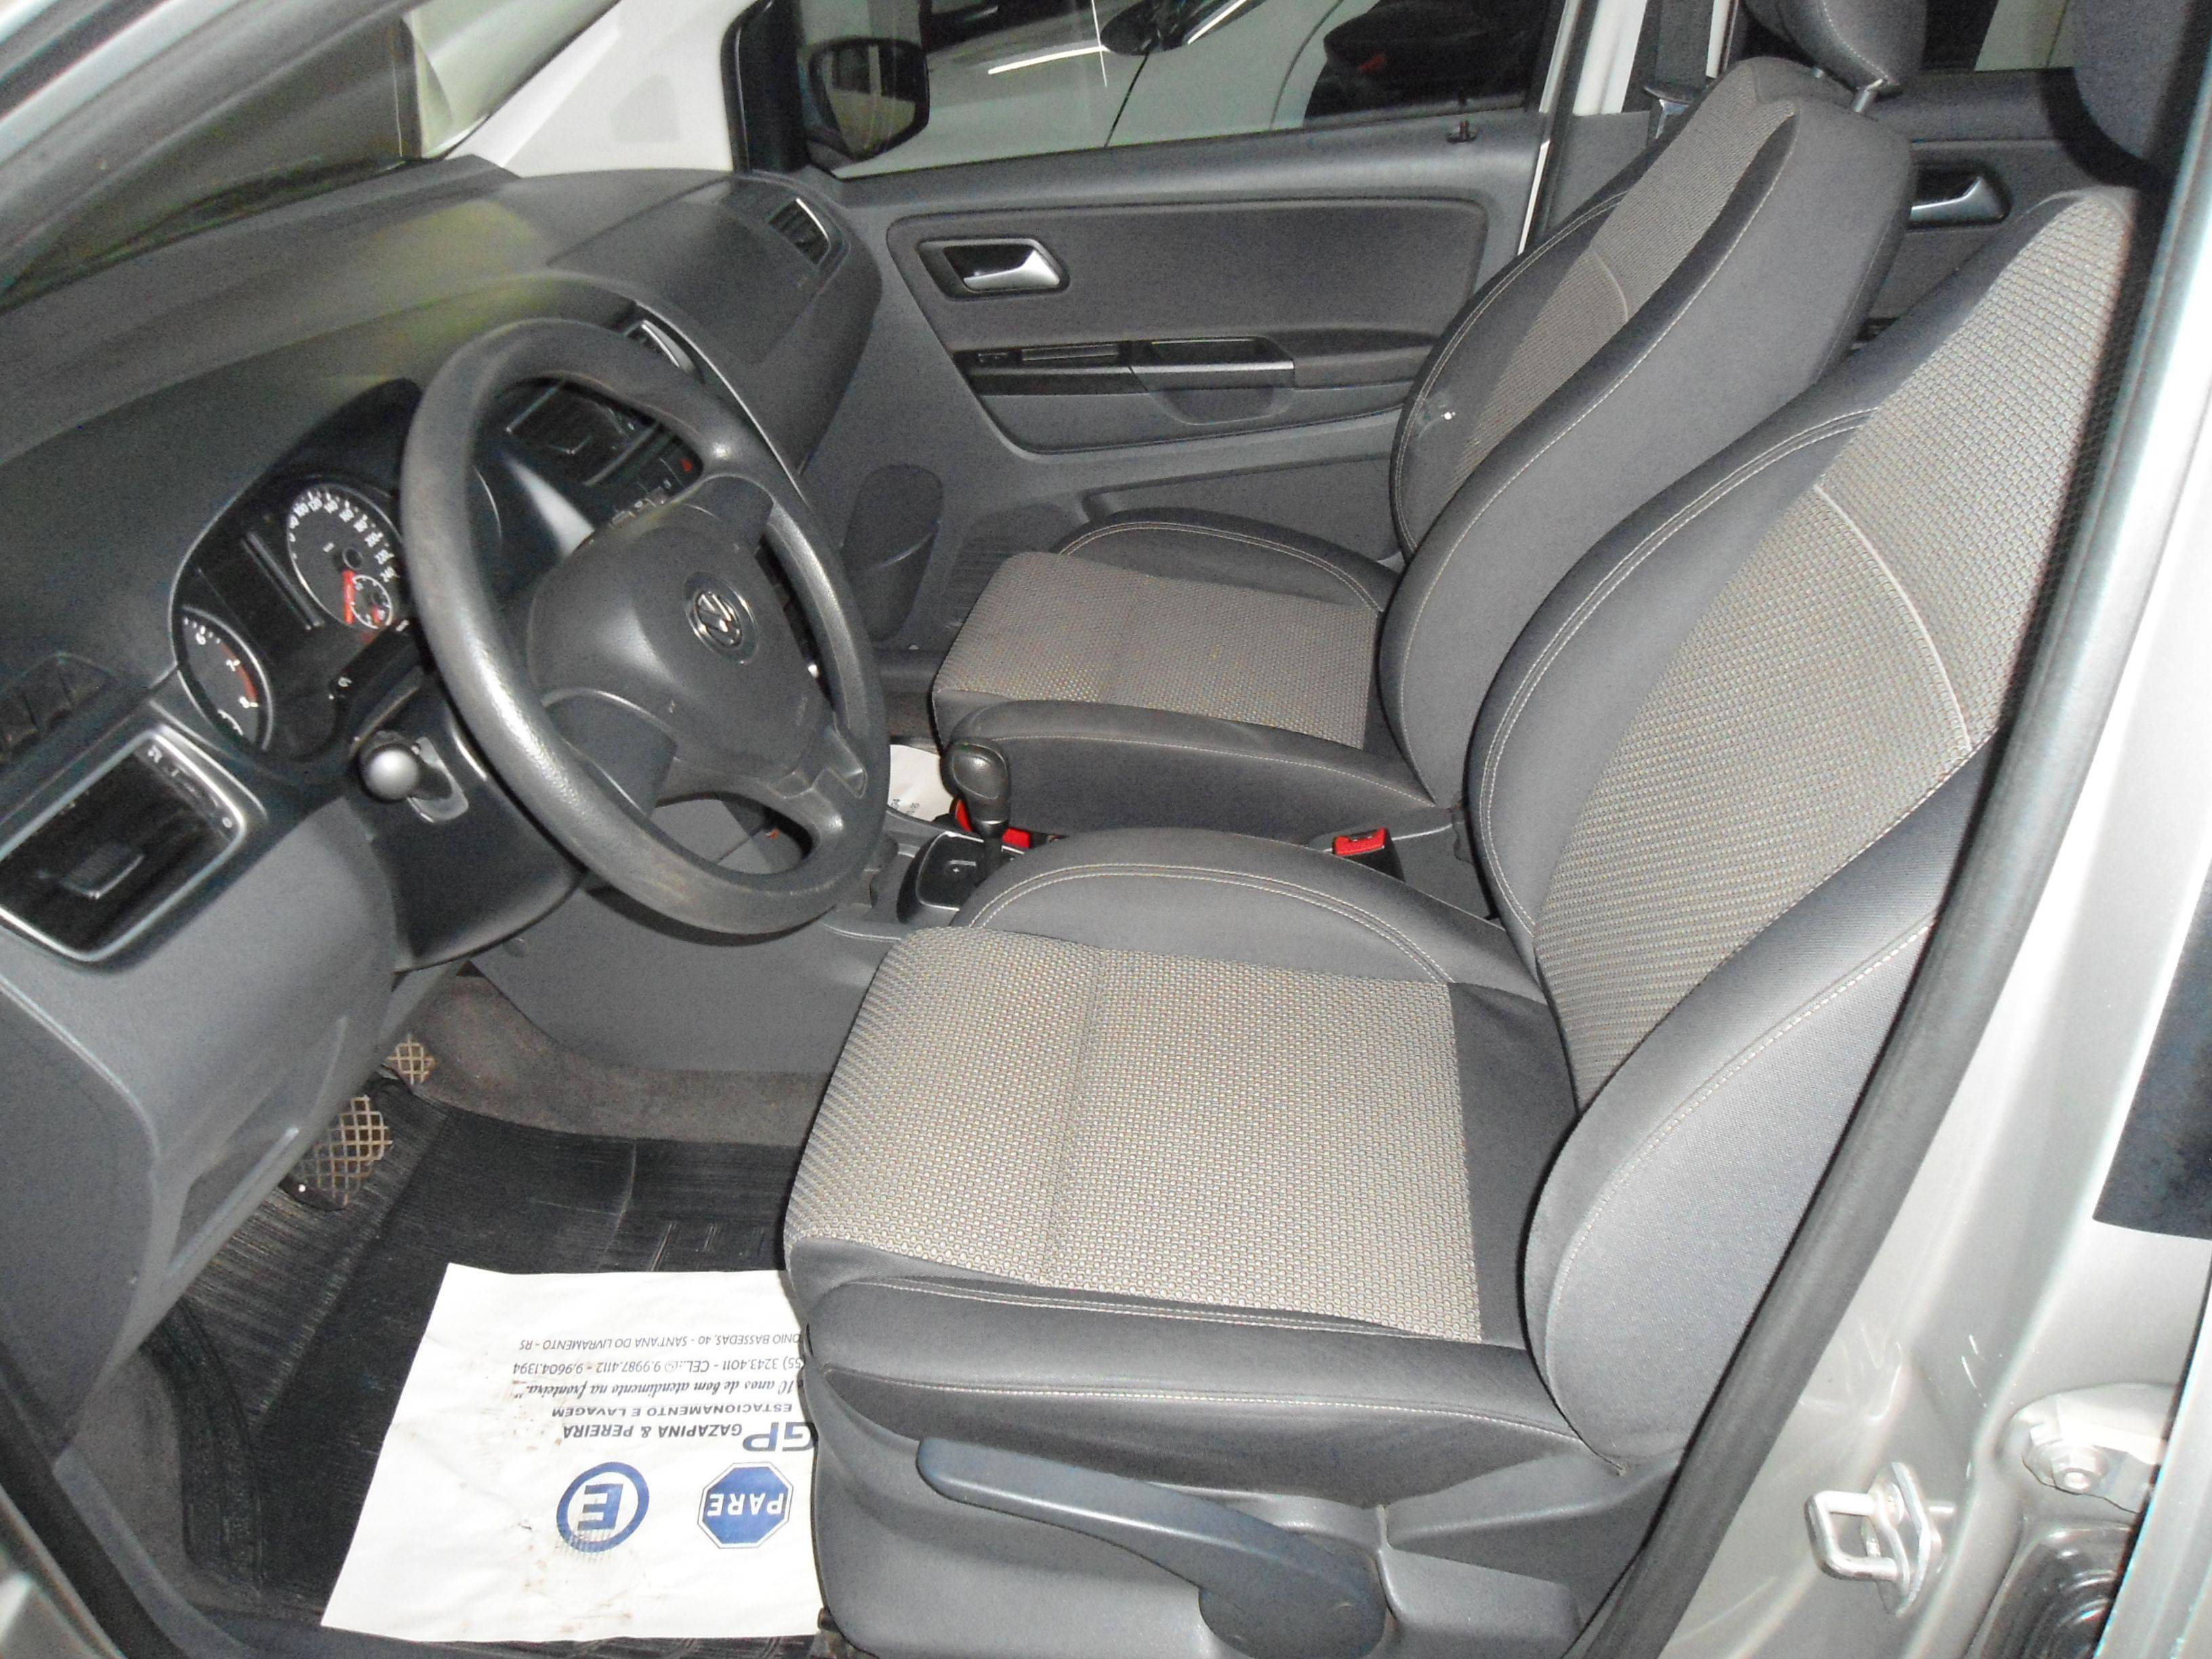 CHEVROLET SPACEFOX SPORT G I I 1.6 2011